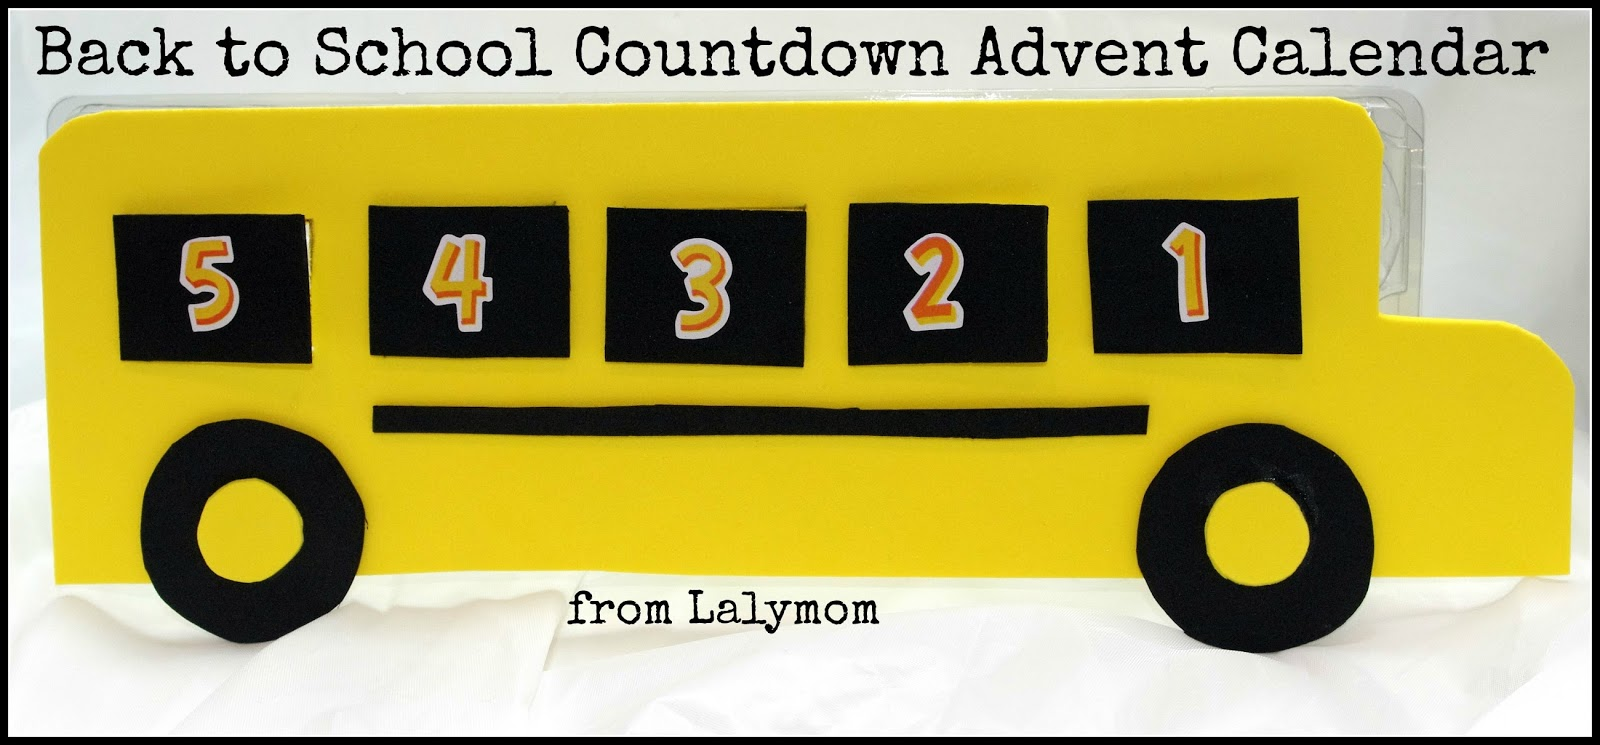 Calendar Craft Ideas For School